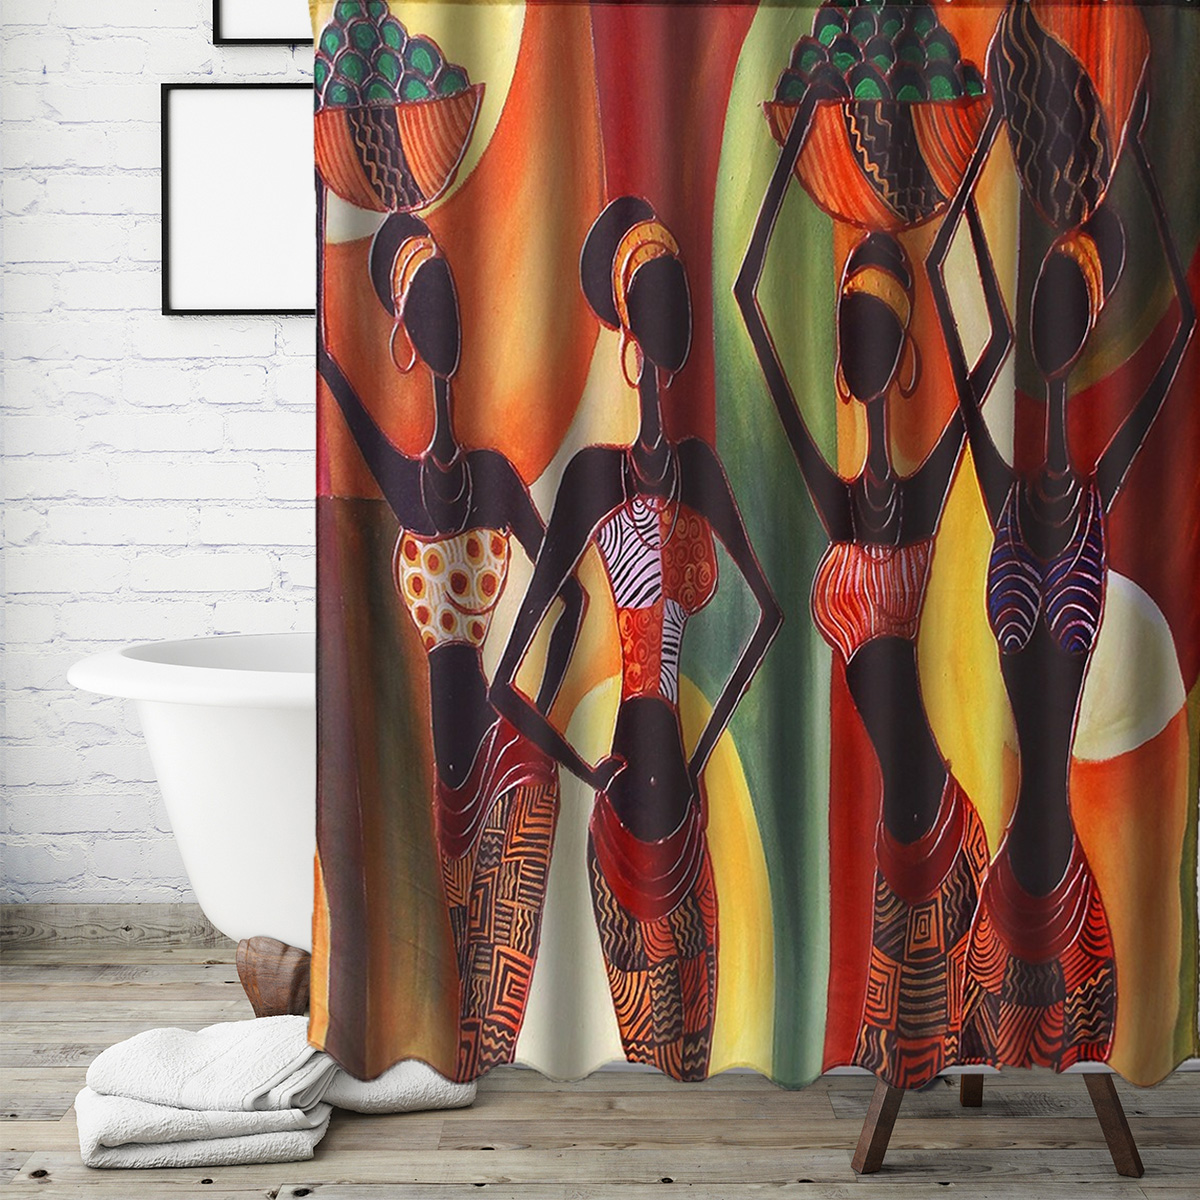 72inch Waterproof Fabric Bathroom Mat Shower Curtain Home Decor Set Long Road